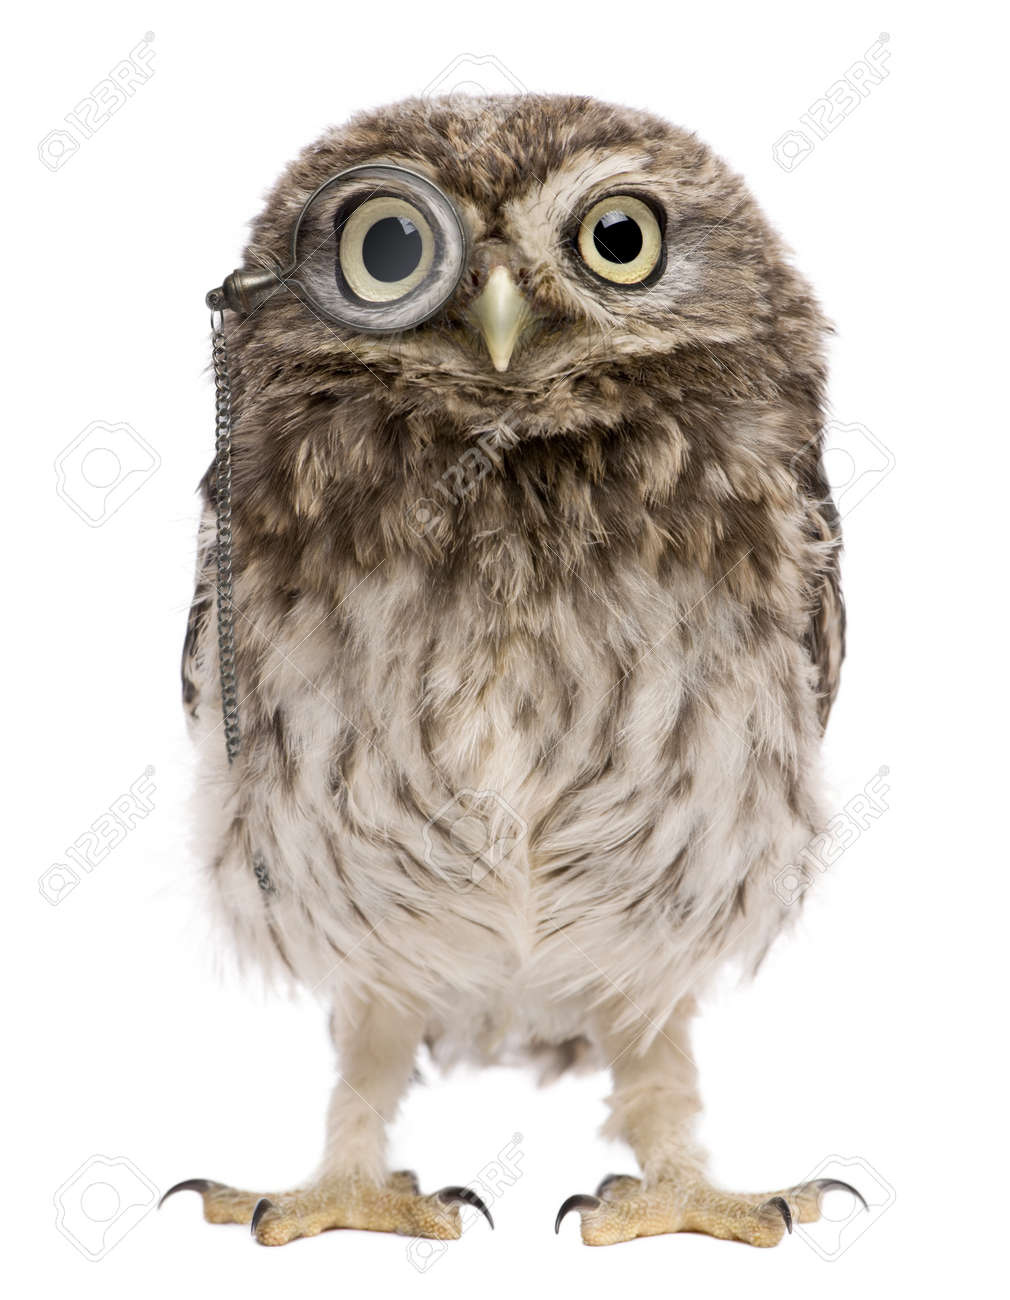 Little Owl wearing magnifying glass, 50 days old, Athene noctua, standing in front of a white background Stock Photo - 7980670